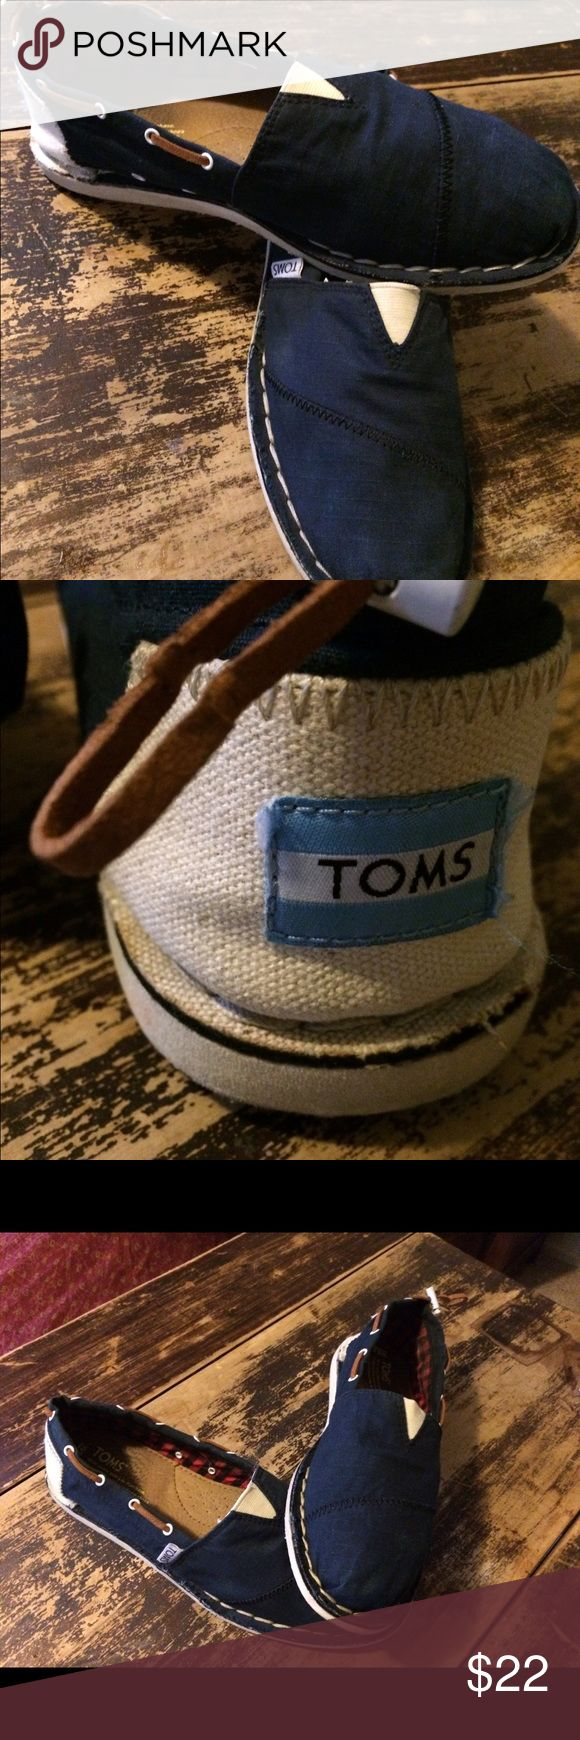 Toms shoe Perfectly nautical Toms Bimini shoe. Used but still in good clean condition. Toms Shoes Slippers